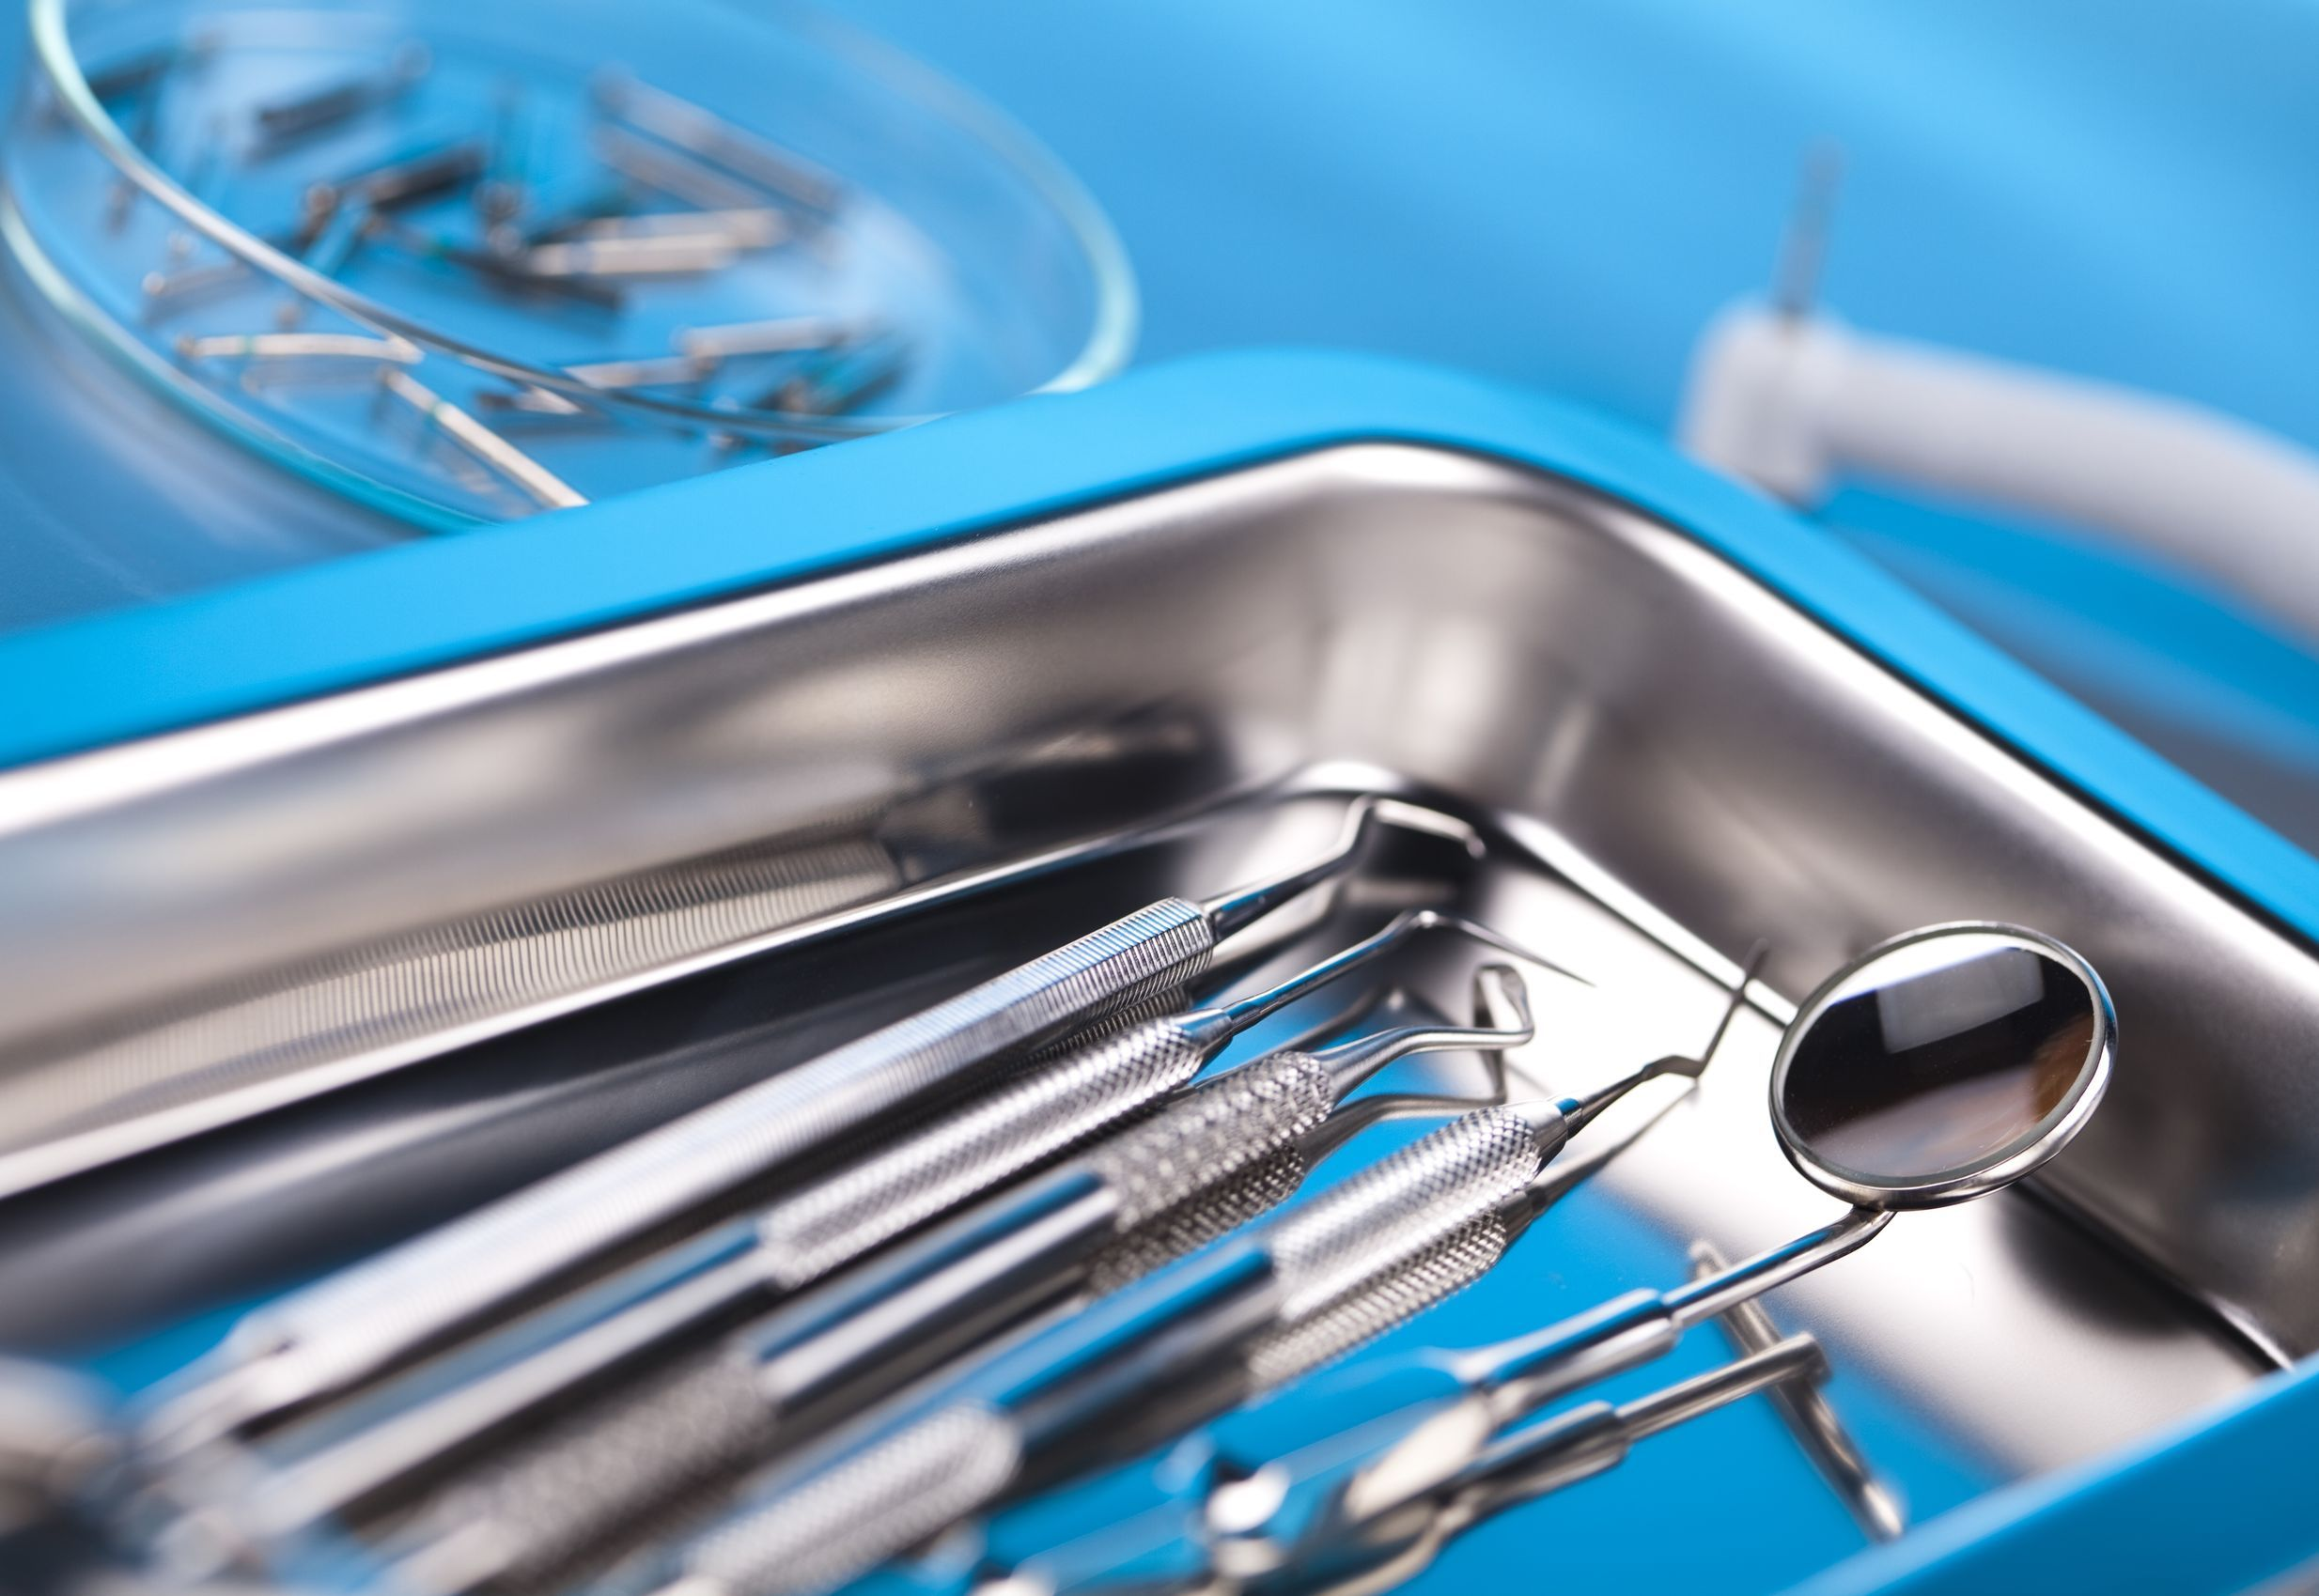 Dental Instruments manufacturing according to